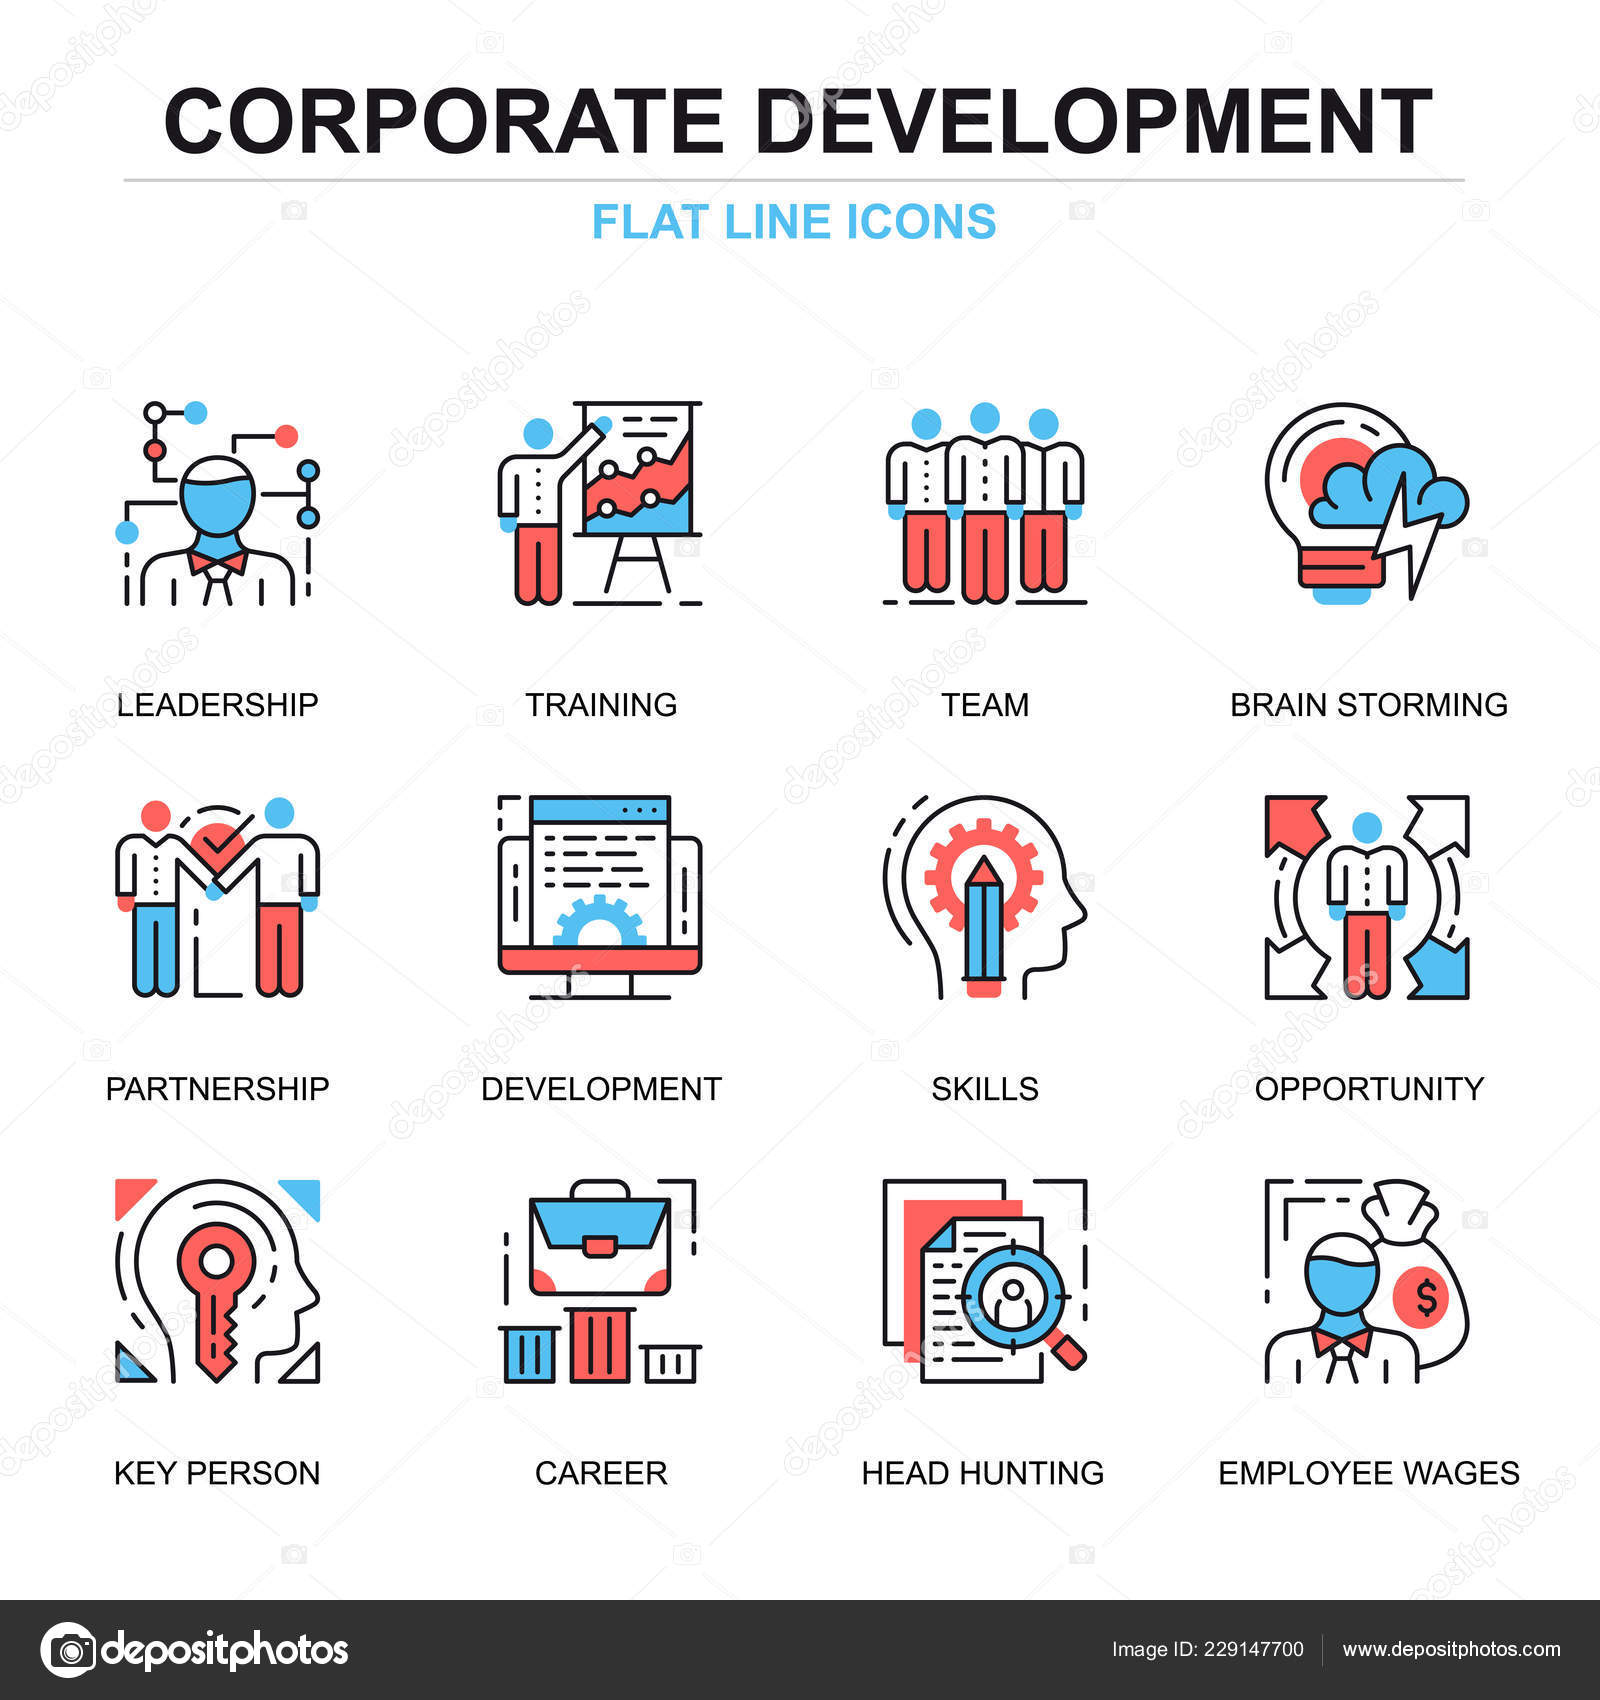 Flat Line Corporate Development Icons Concepts Set Website